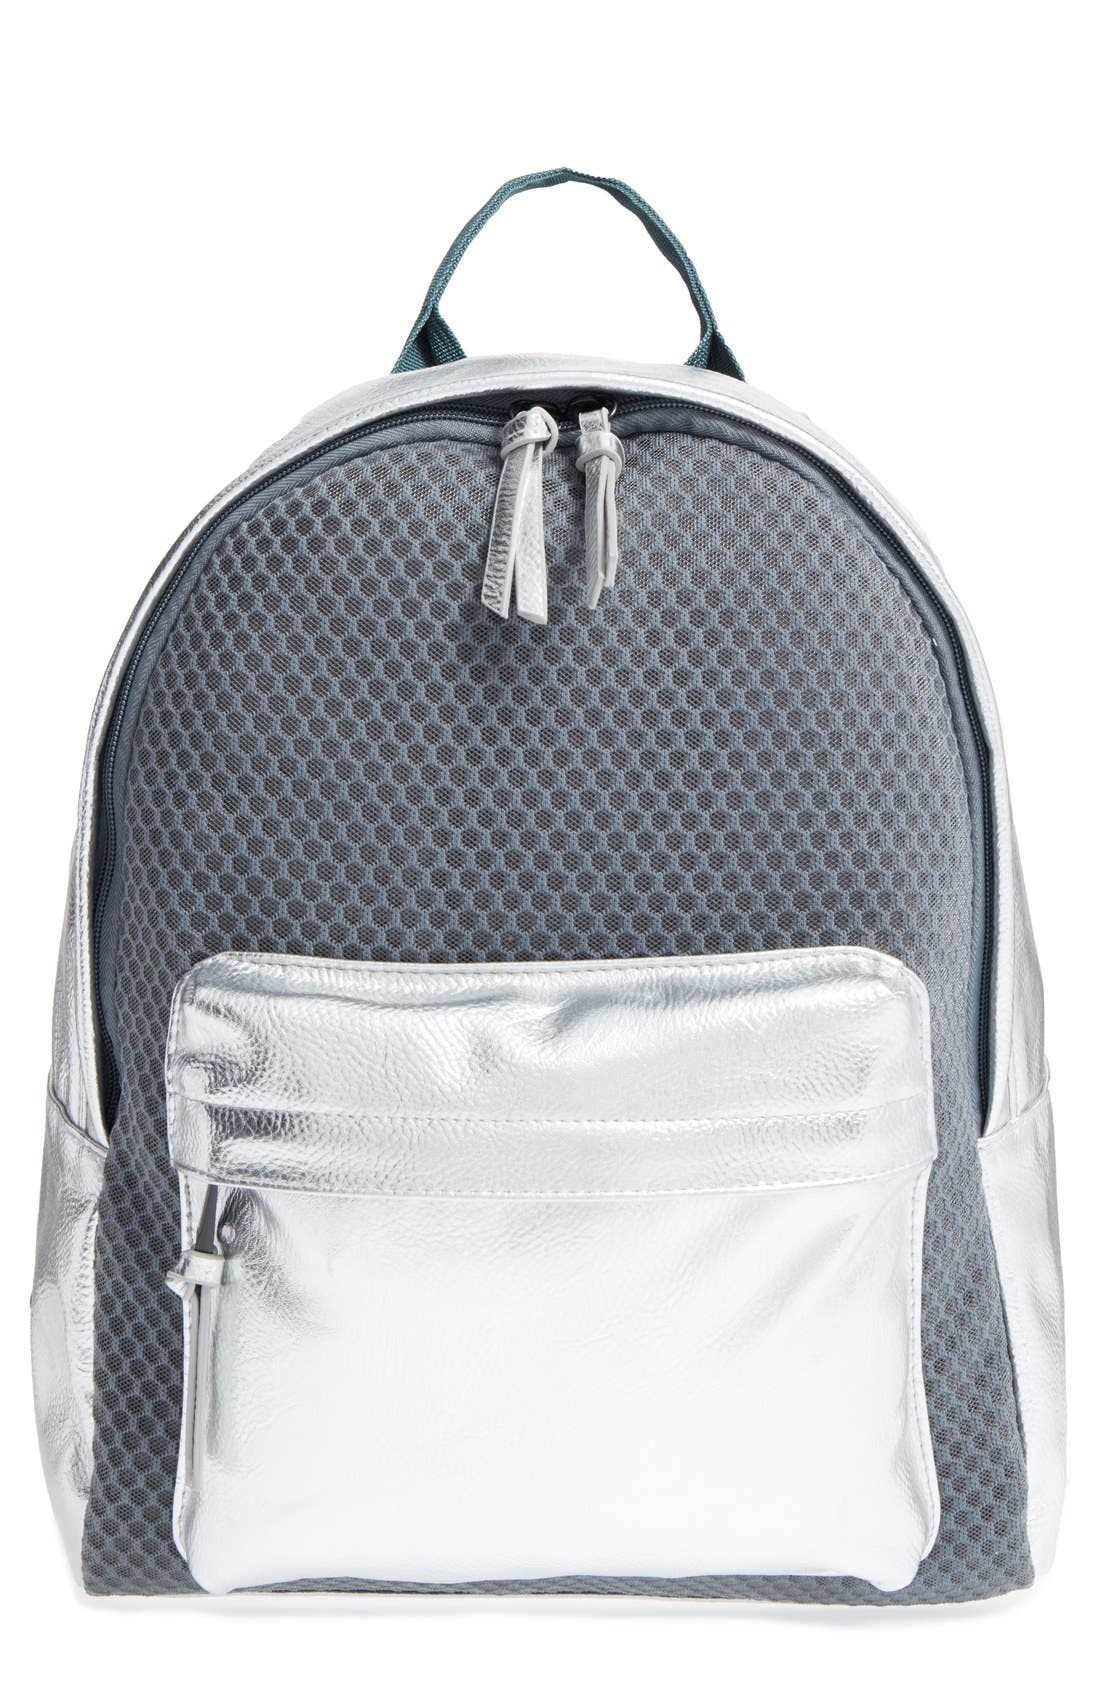 Alternate Image 1 Selected - POVERTY FLATS by rian 'Sport' Faux Leather & Mesh Backpack